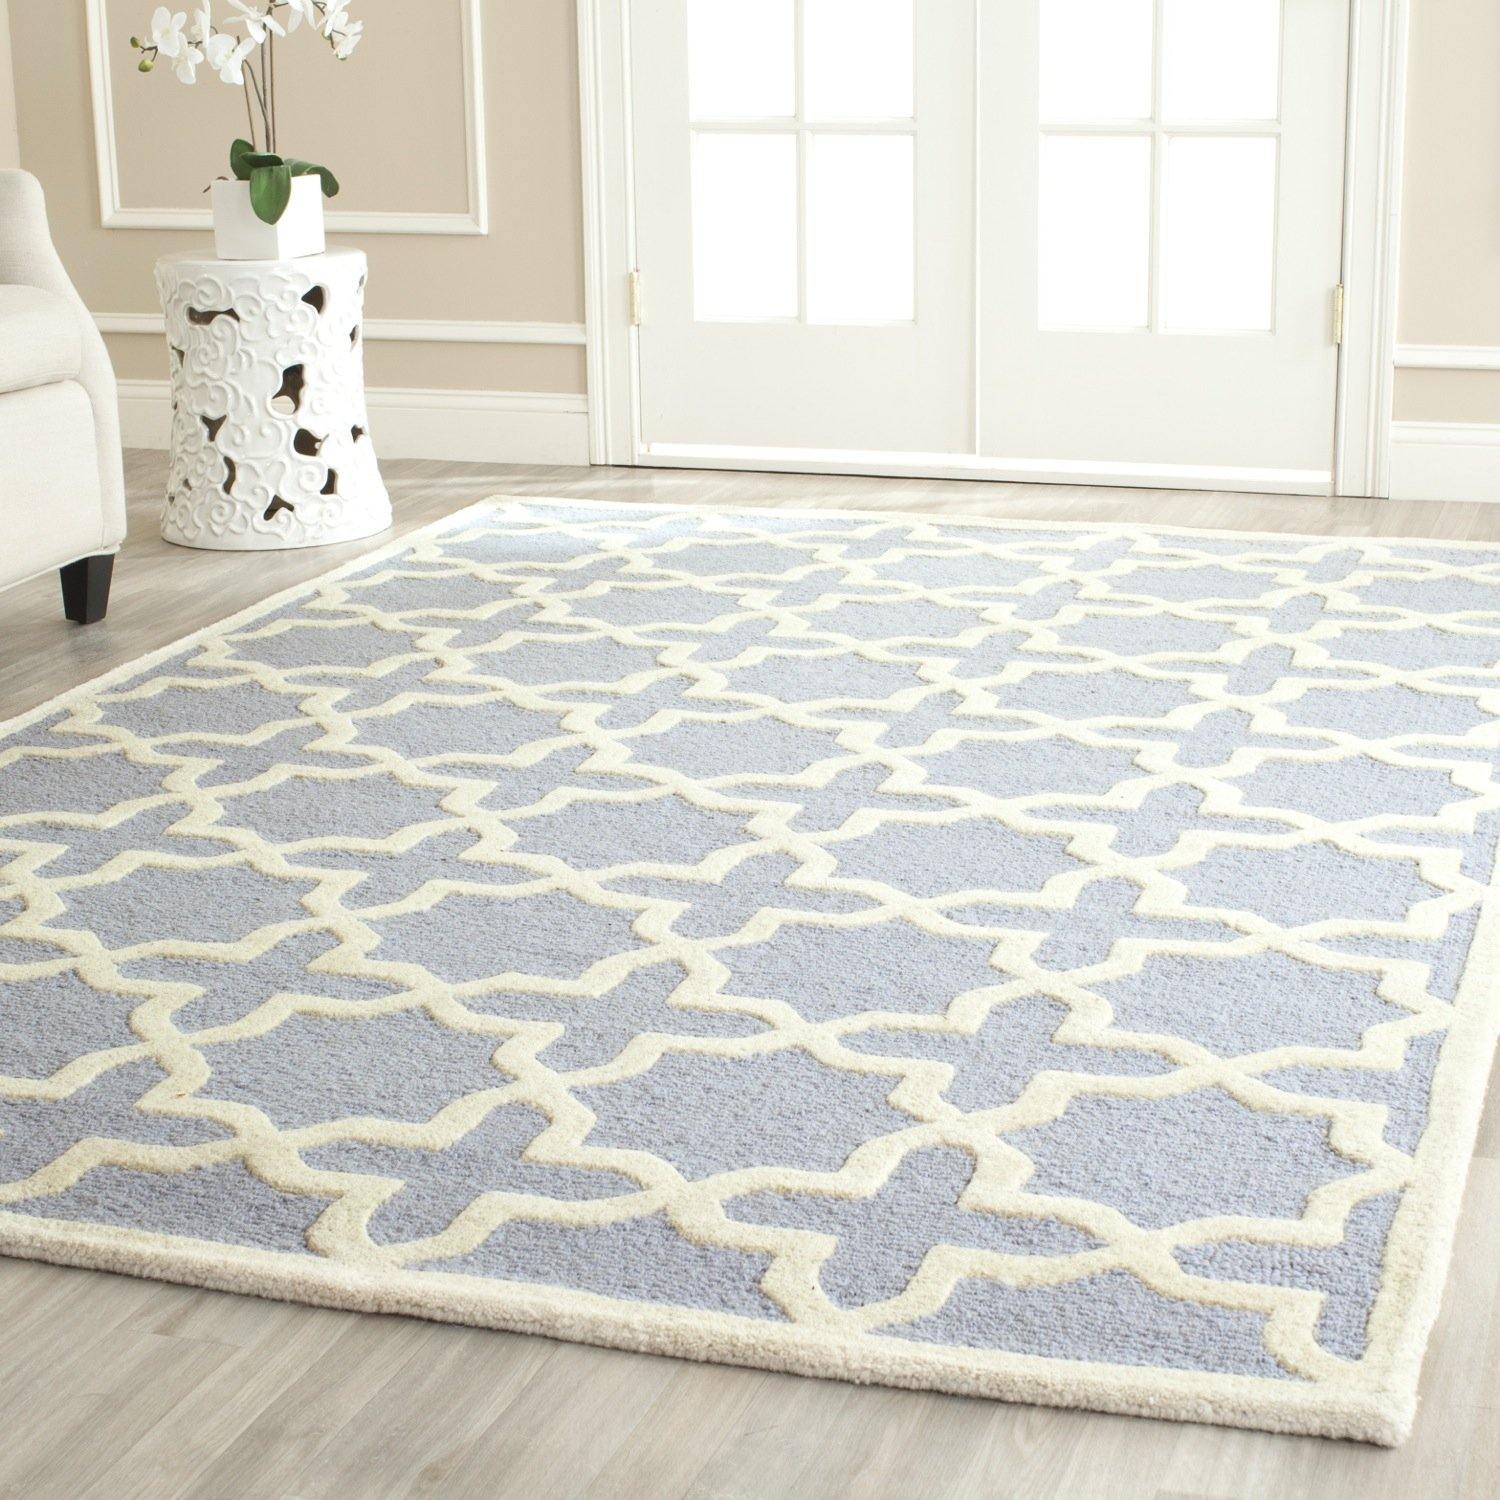 amazoncom safavieh cambridge collection cam125a handmade moroccan geometric light blue and ivory premium wool area rug 9u0027 x 12u0027 kitchen u0026 dining - Safavieh Rug